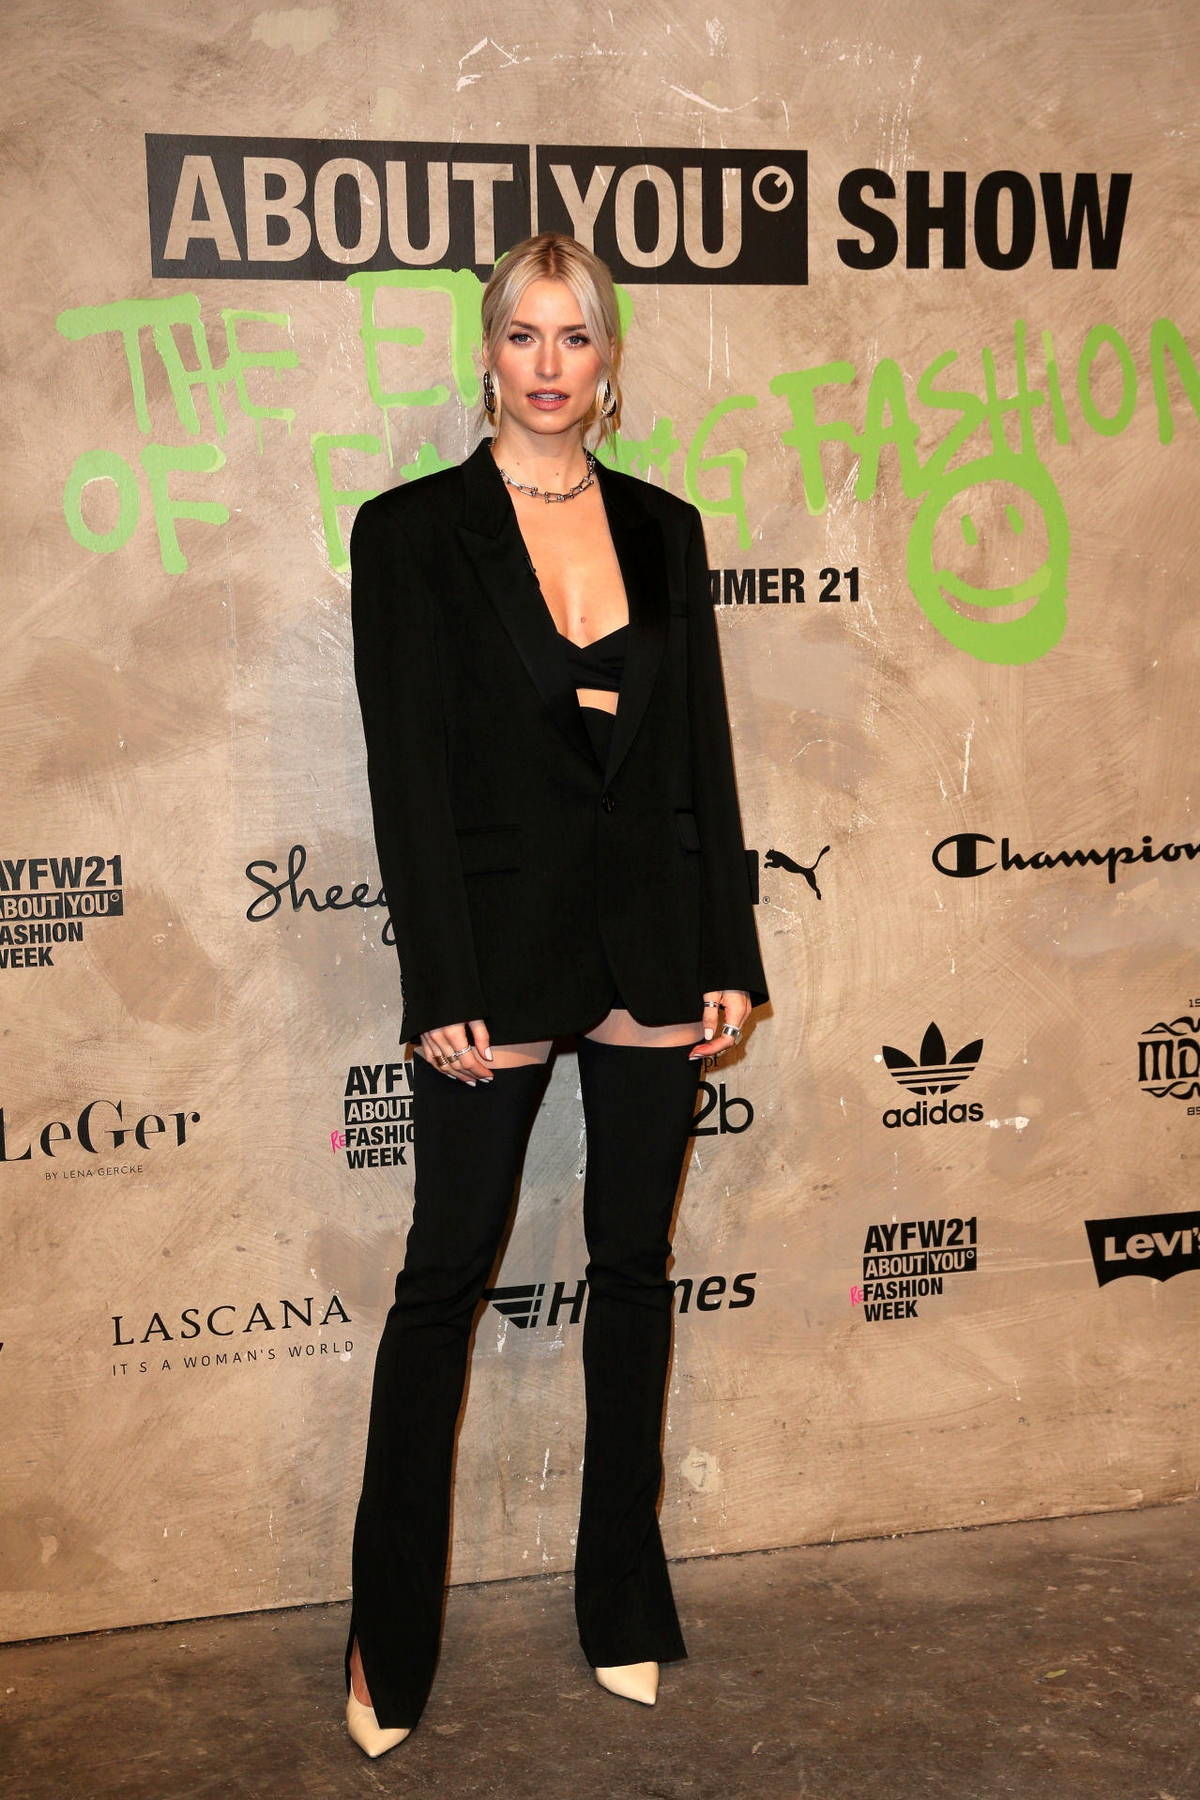 Lena Gercke attends the 'About You' Fashion Show in Berlin, Germany